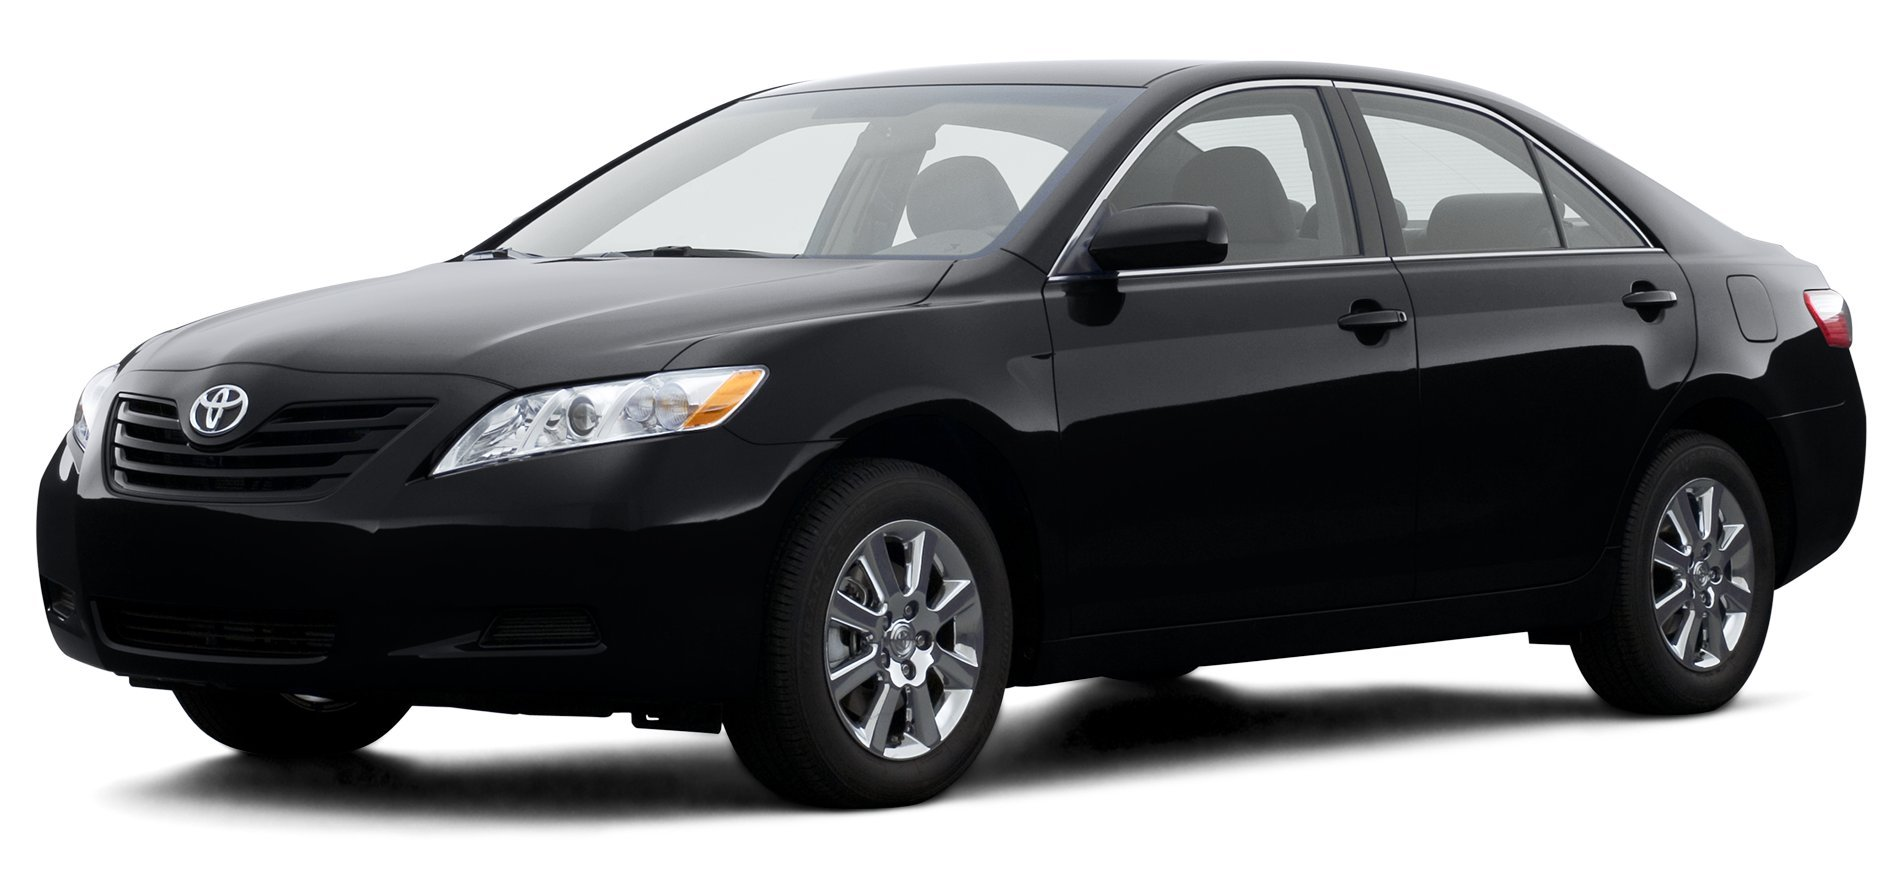 2007 toyota camry reviews images and specs vehicles. Black Bedroom Furniture Sets. Home Design Ideas